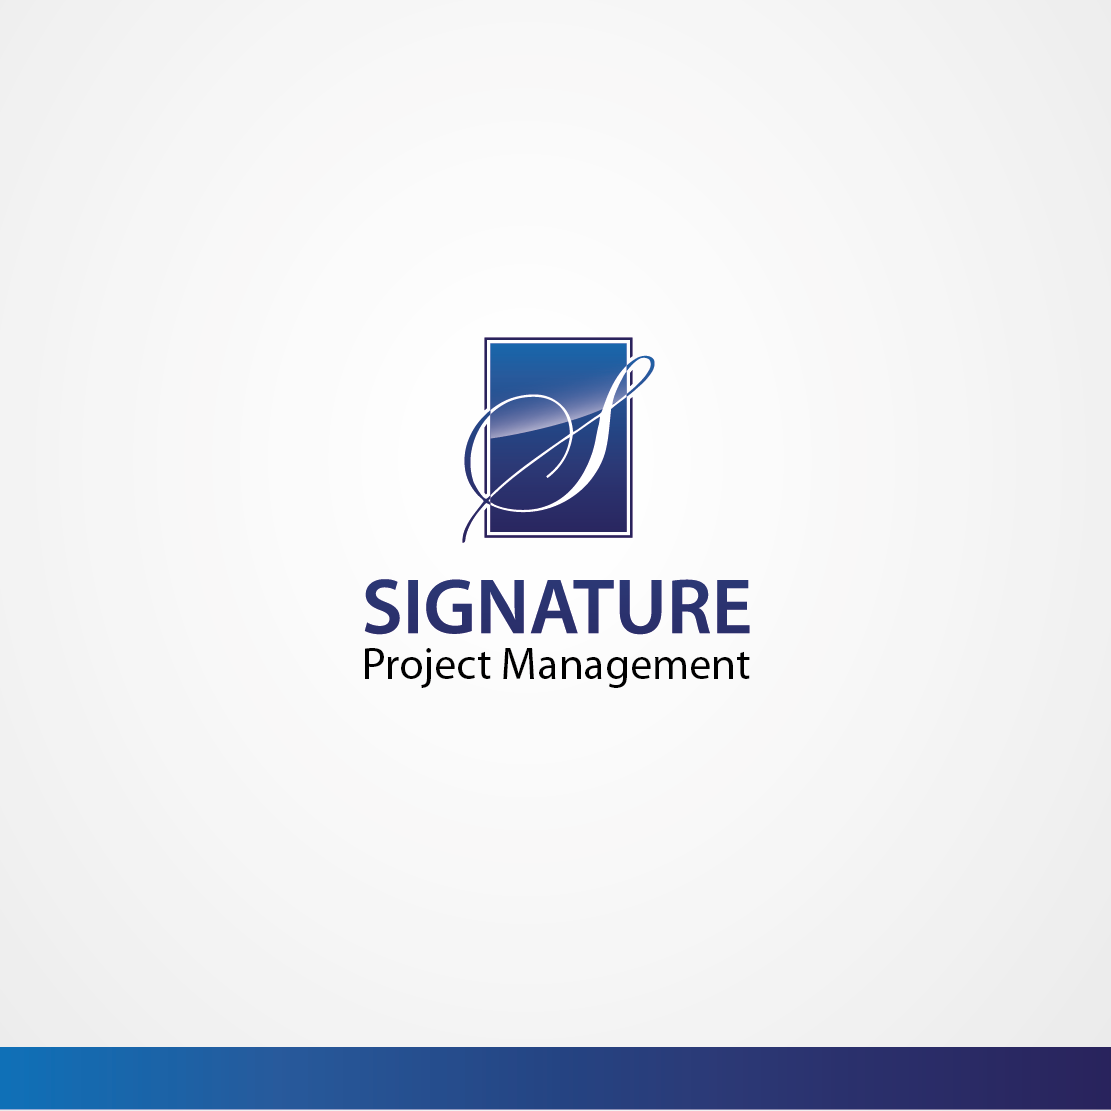 New logo wanted for Signature Project Management